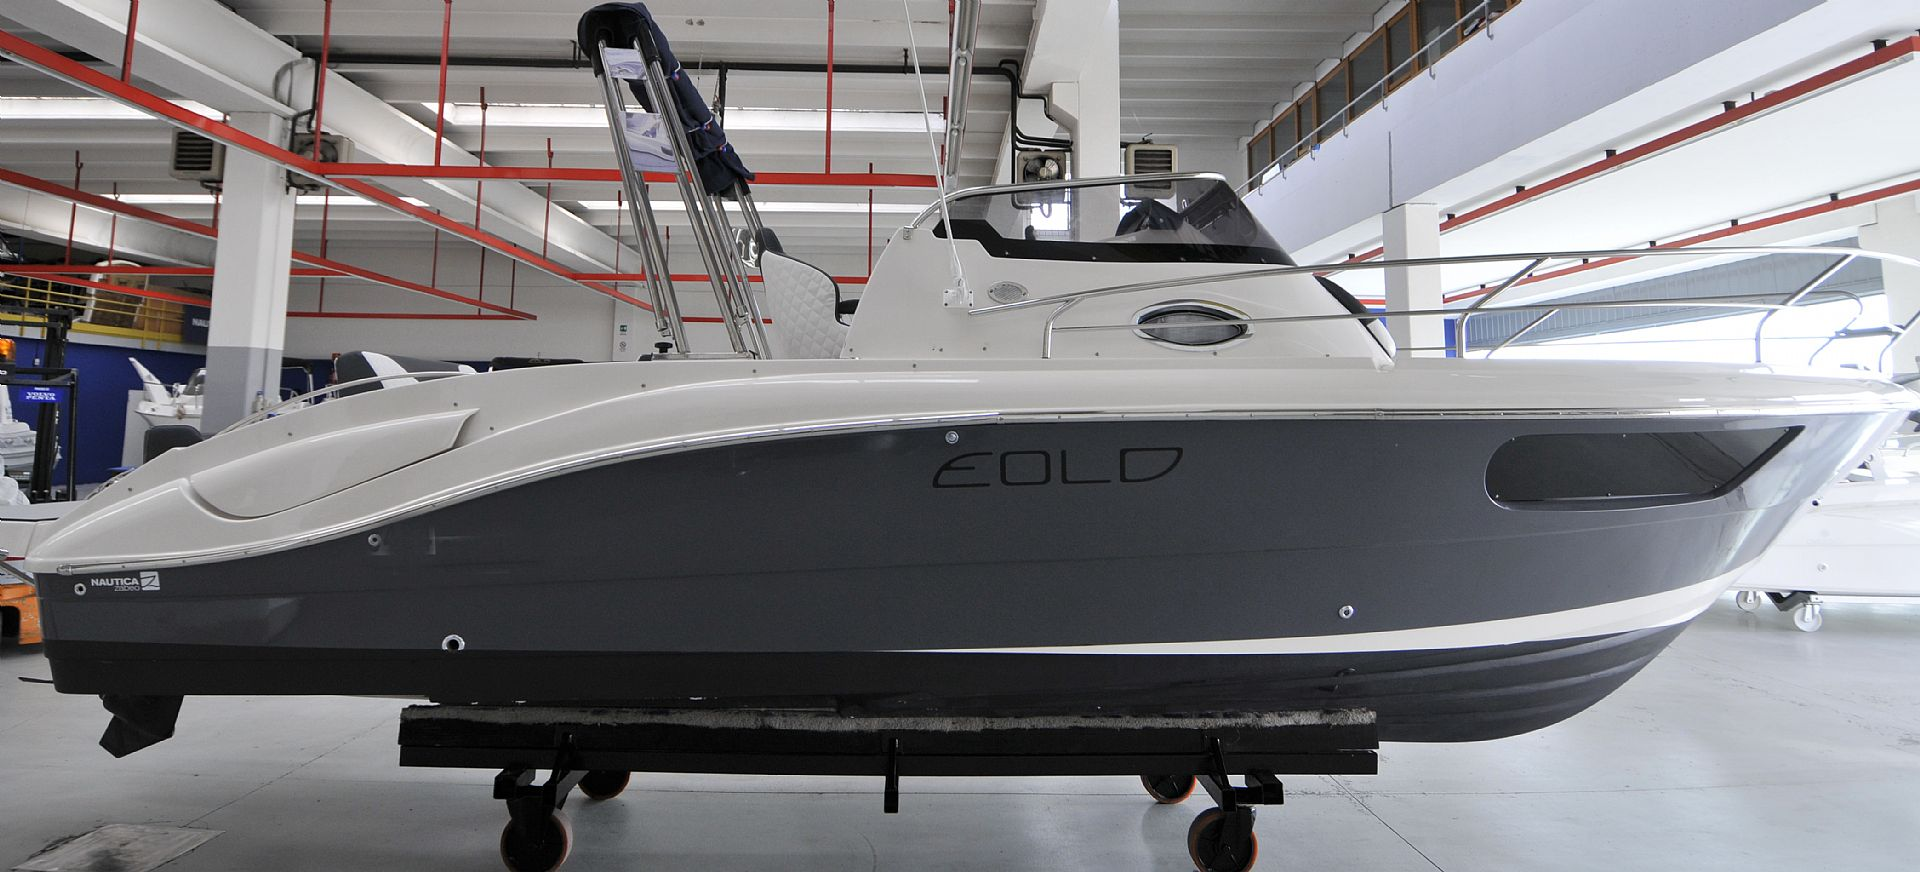 Eolo 830 Day2020 for sale call for a price